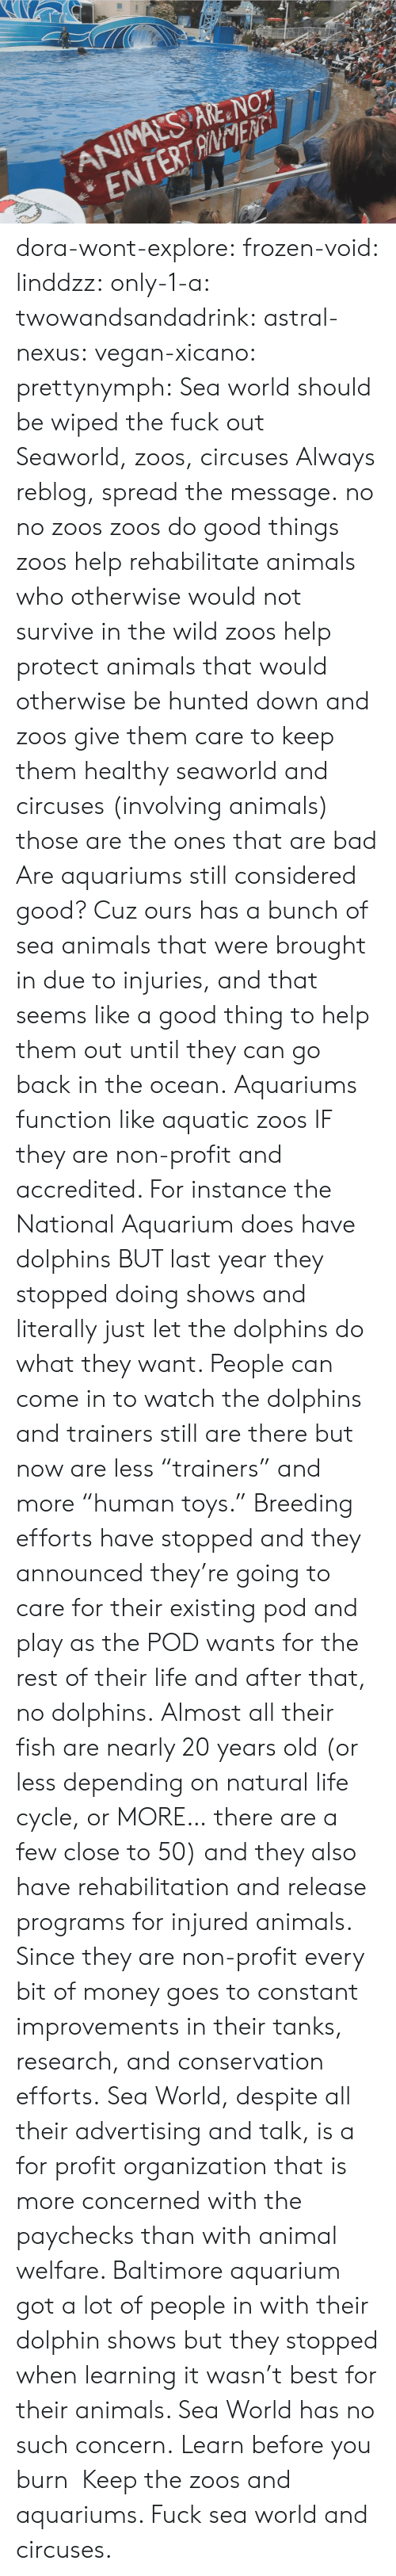 "SeaWorld: ANIMALS ARE NOT  ENTERTANENTi dora-wont-explore:   frozen-void:  linddzz:  only-1-a:  twowandsandadrink:  astral-nexus:  vegan-xicano:  prettynymph:  Sea world should be wiped the fuck out  Seaworld, zoos, circuses  Always reblog, spread the message.  no no zoos zoos do good things zoos help rehabilitate animals who otherwise would not survive in the wild zoos help protect animals that would otherwise be hunted down and zoos give them care to keep them healthy seaworld and circuses (involving animals) those are the ones that are bad  Are aquariums still considered good? Cuz ours has a bunch of sea animals that were brought in due to injuries, and that seems like a good thing to help them out until they can go back in the ocean.  Aquariums function like aquatic zoos IF they are non-profit and accredited. For instance the National Aquarium does have dolphins BUT last year they stopped doing shows and literally just let the dolphins do what they want. People can come in to watch the dolphins and trainers still are there but now are less ""trainers"" and more ""human toys."" Breeding efforts have stopped and they announced they're going to care for their existing pod and play as the POD wants for the rest of their life and after that, no dolphins. Almost all their fish are nearly 20 years old (or less depending on natural life cycle, or MORE… there are a few close to 50) and they also have rehabilitation and release programs for injured animals. Since they are non-profit every bit of money goes to constant improvements in their tanks, research, and conservation efforts. Sea World, despite all their advertising and talk, is a for profit organization that is more concerned with the paychecks than with animal welfare. Baltimore aquarium got a lot of people in with their dolphin shows but they stopped when learning it wasn't best for their animals. Sea World has no such concern.  Learn before you burn   Keep the zoos and aquariums. Fuck sea world and circuses."